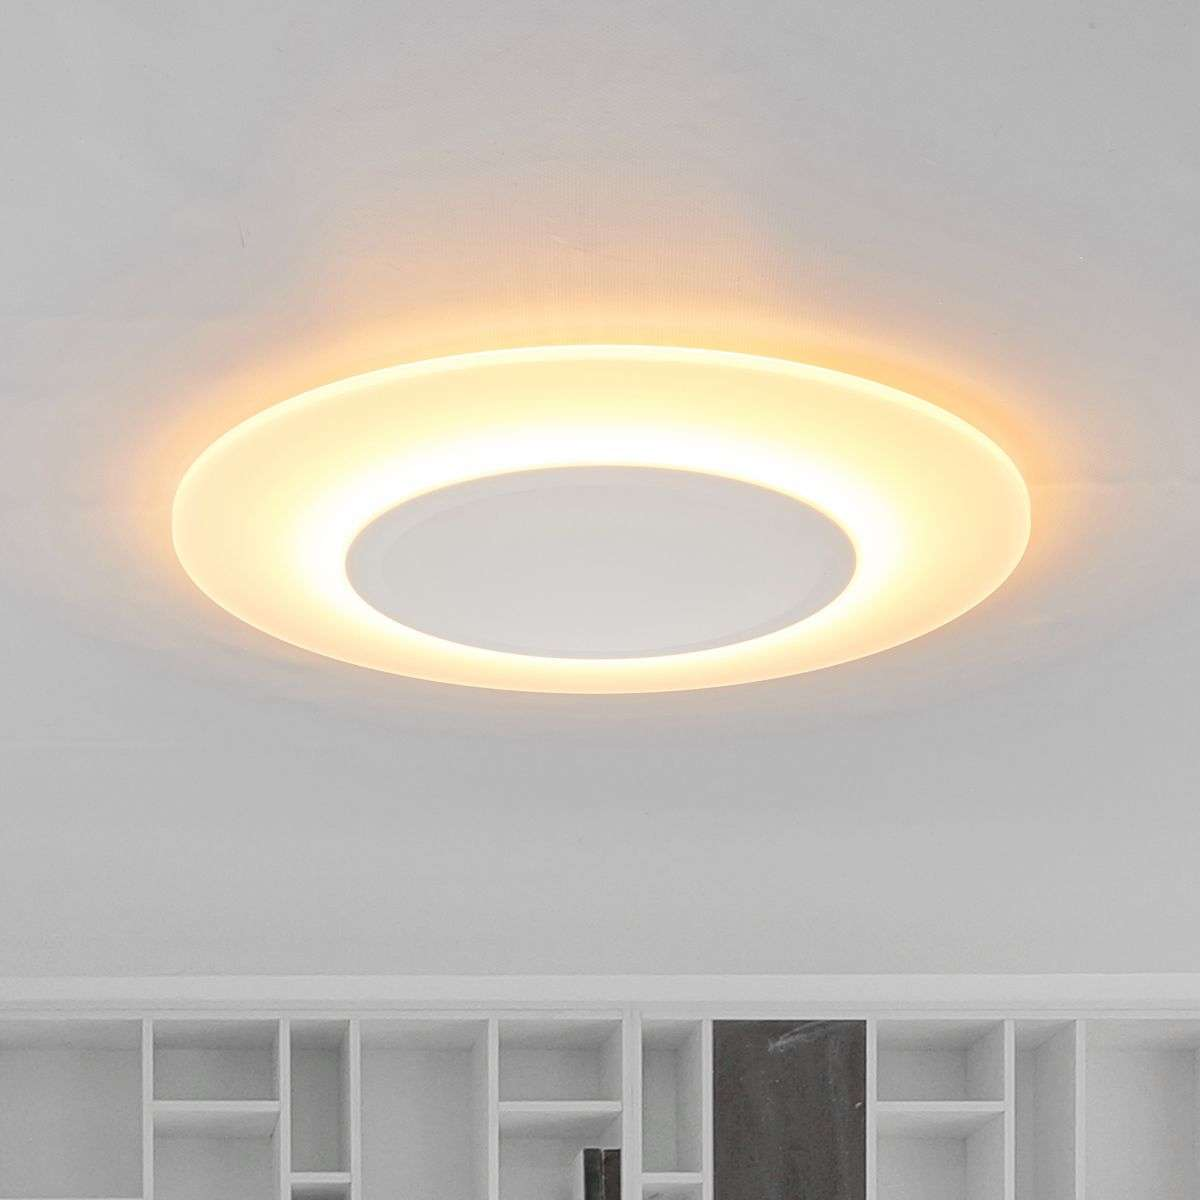 Very flat ceiling light led flat 1 200 lumens 7261139 31g very flat ceiling light led flat 1200 lumens aloadofball